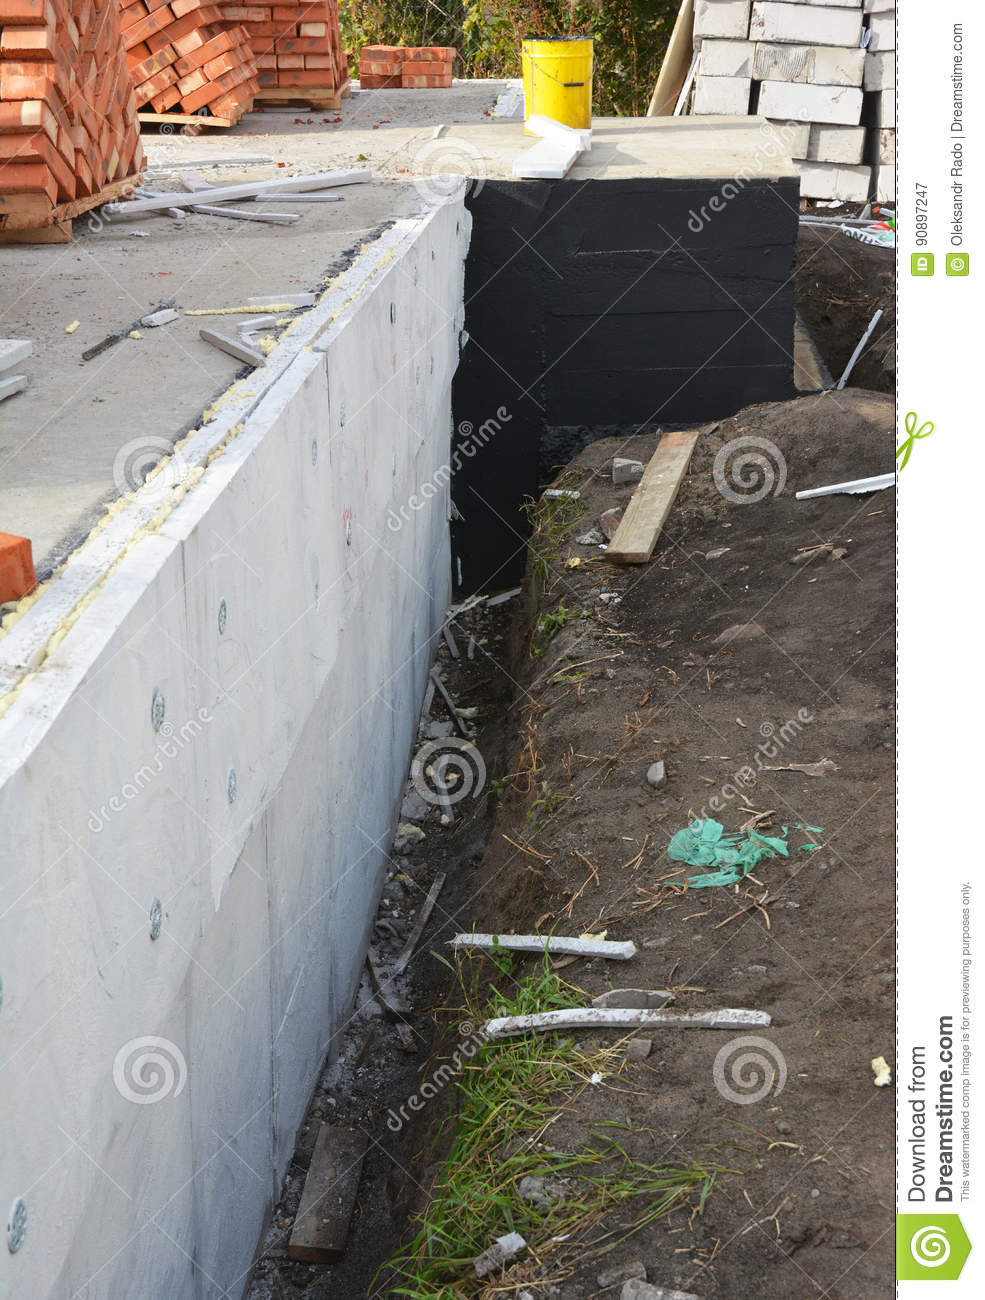 Insulating Exterior Foundation Walls Foundation Insulation With Styrofoam Sheets Rigid Foam For